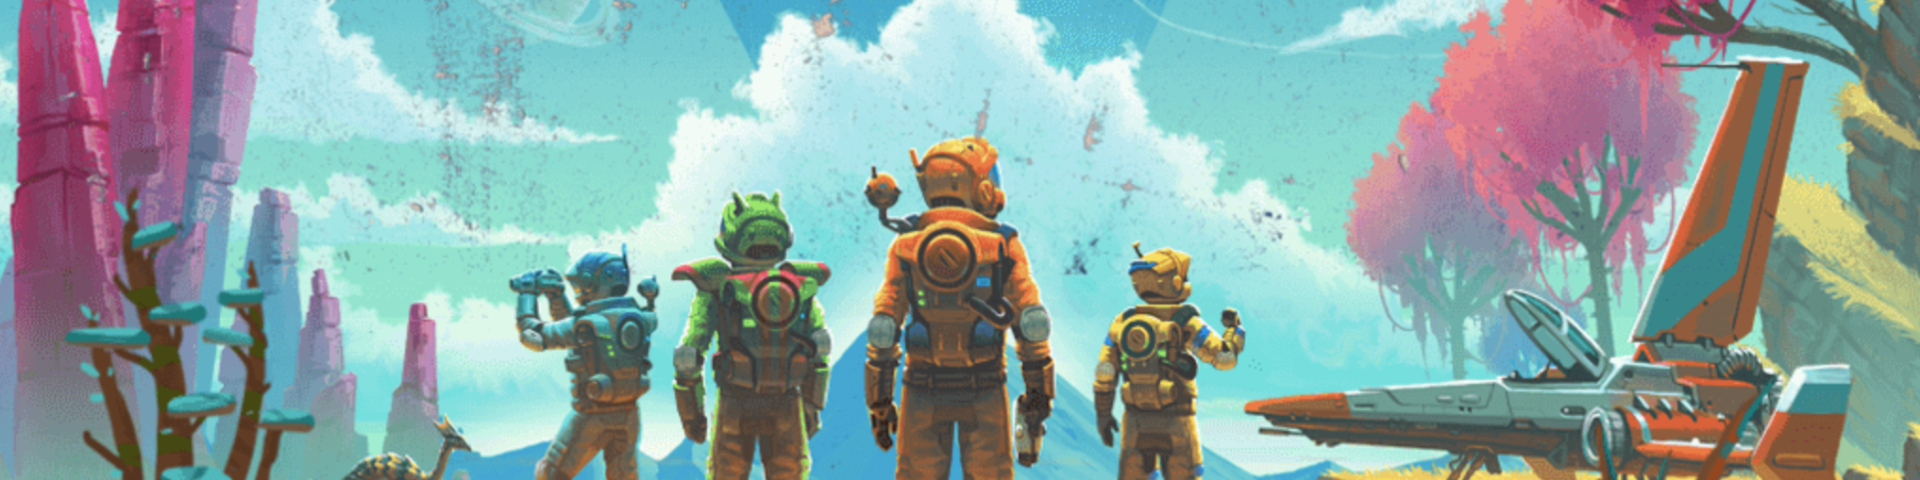 no man's sky reviews